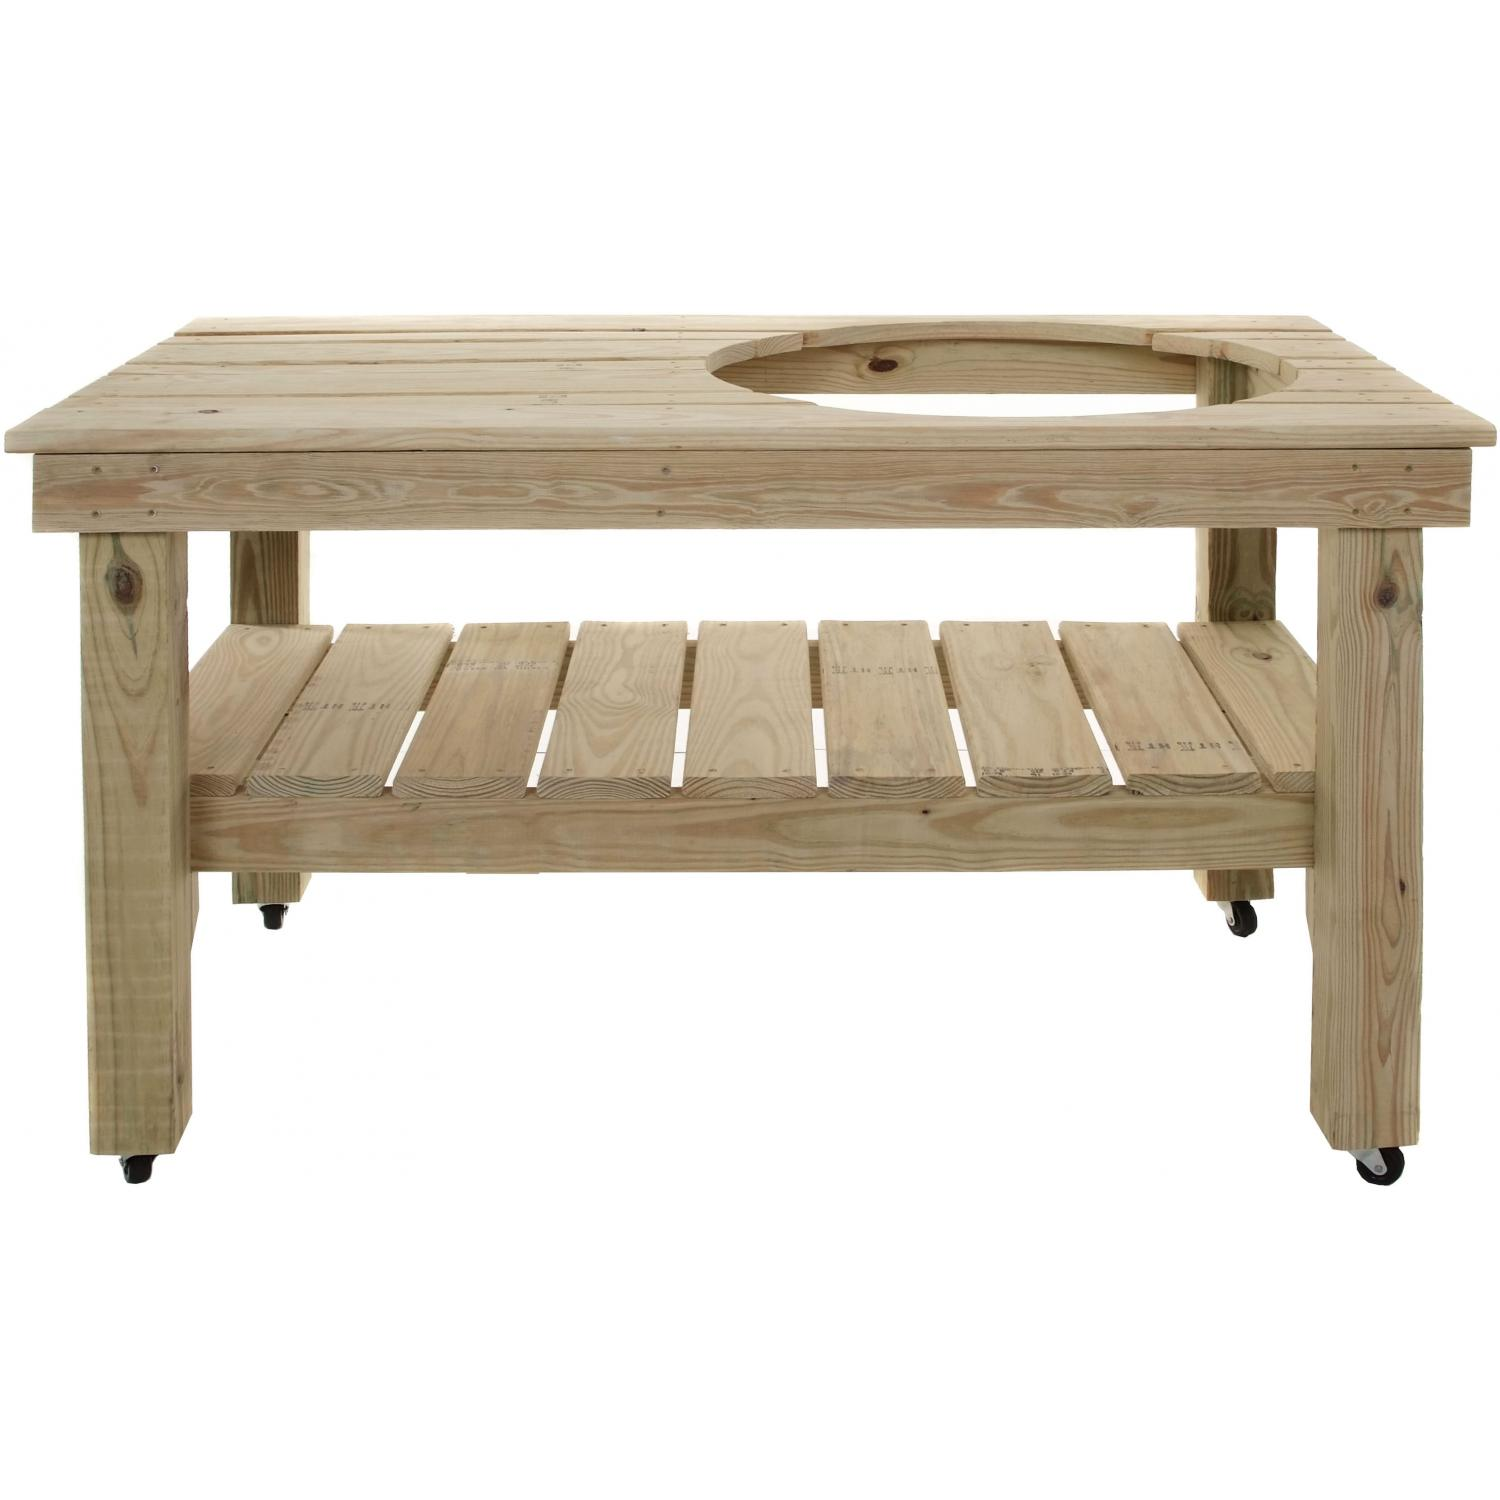 Grill Dome XL 58 X 32 Inch Pressure Treated Wood Table